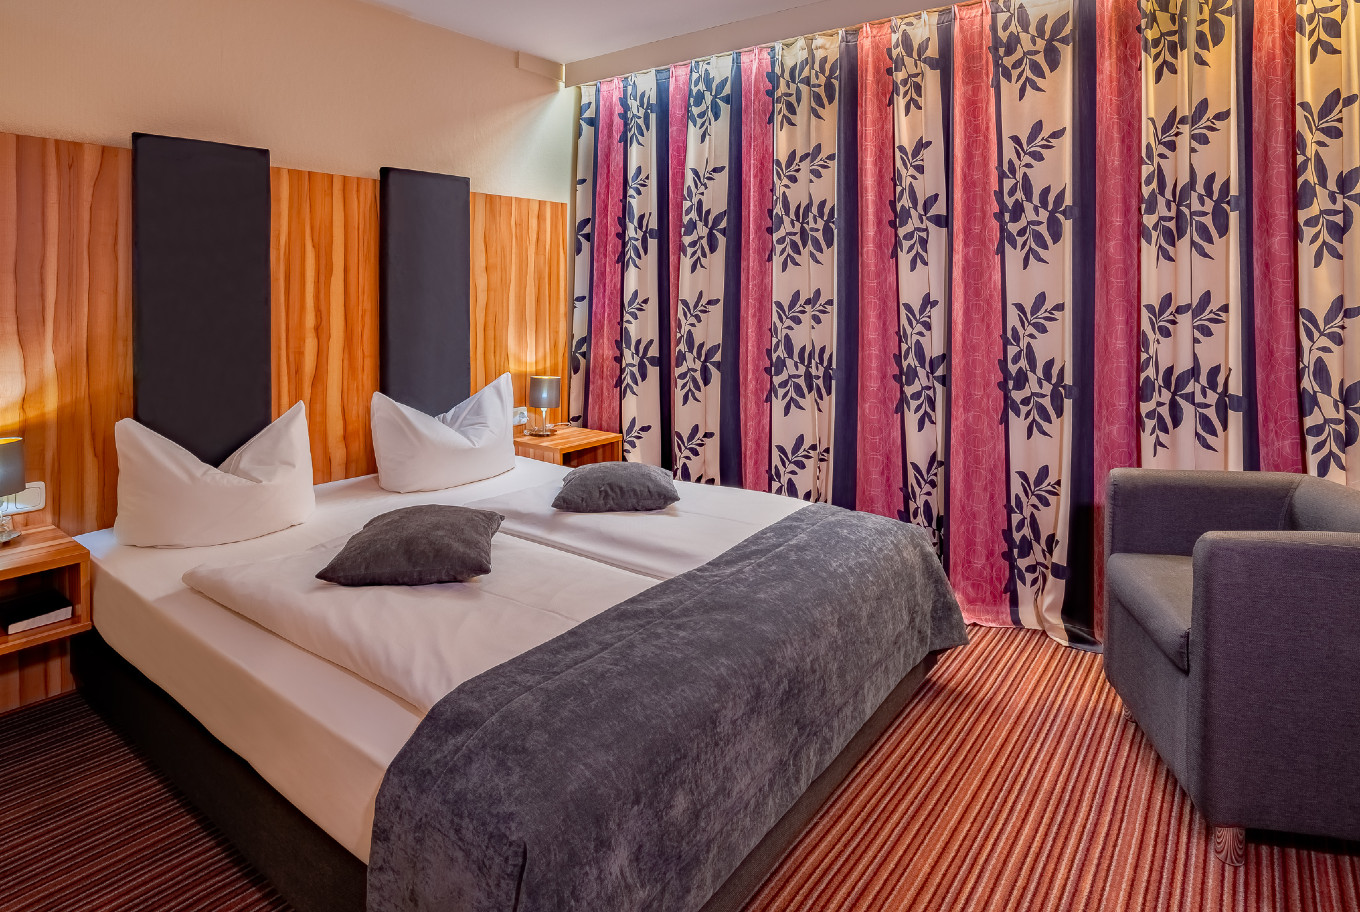 Stay overnight in one of our double rooms in our Hotel Augsburg.